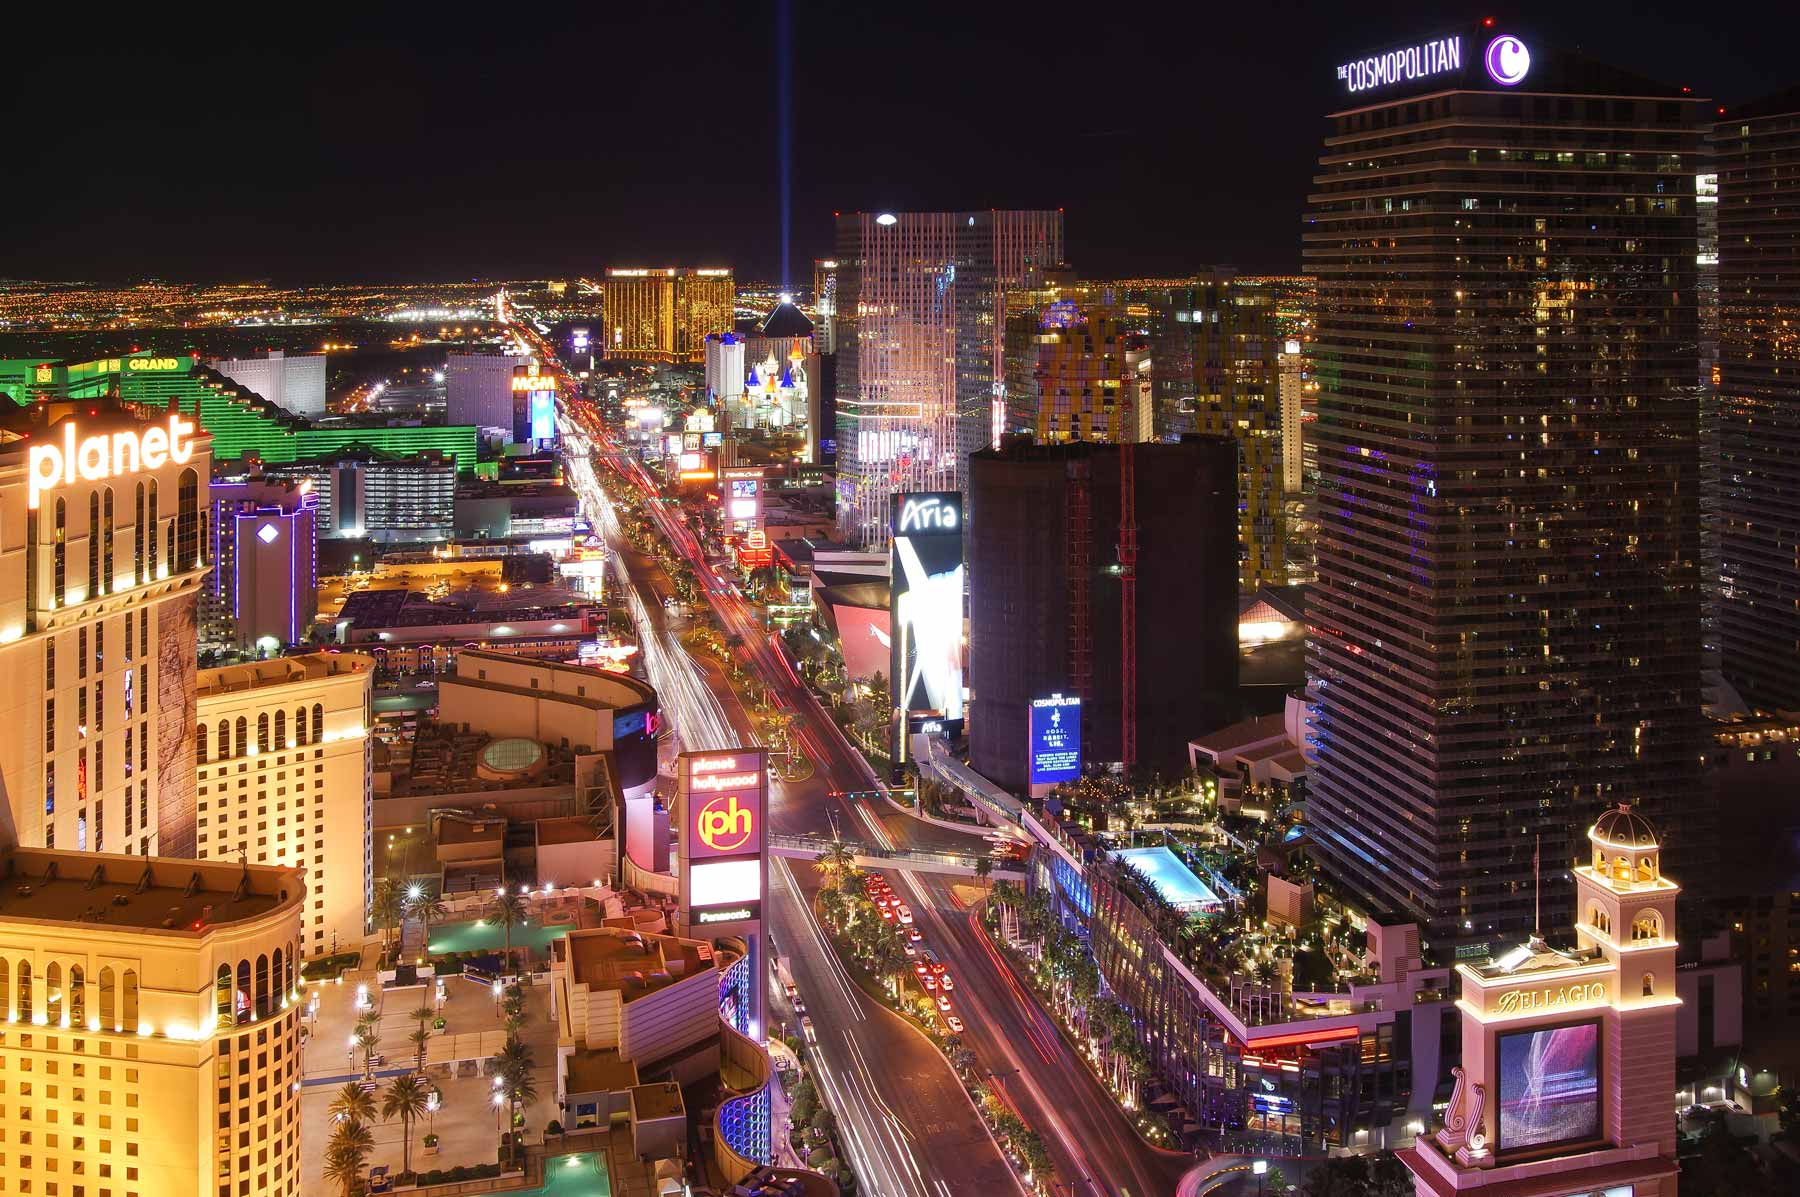 Find Shaw-Lundquist Projects on the Vegas Strip